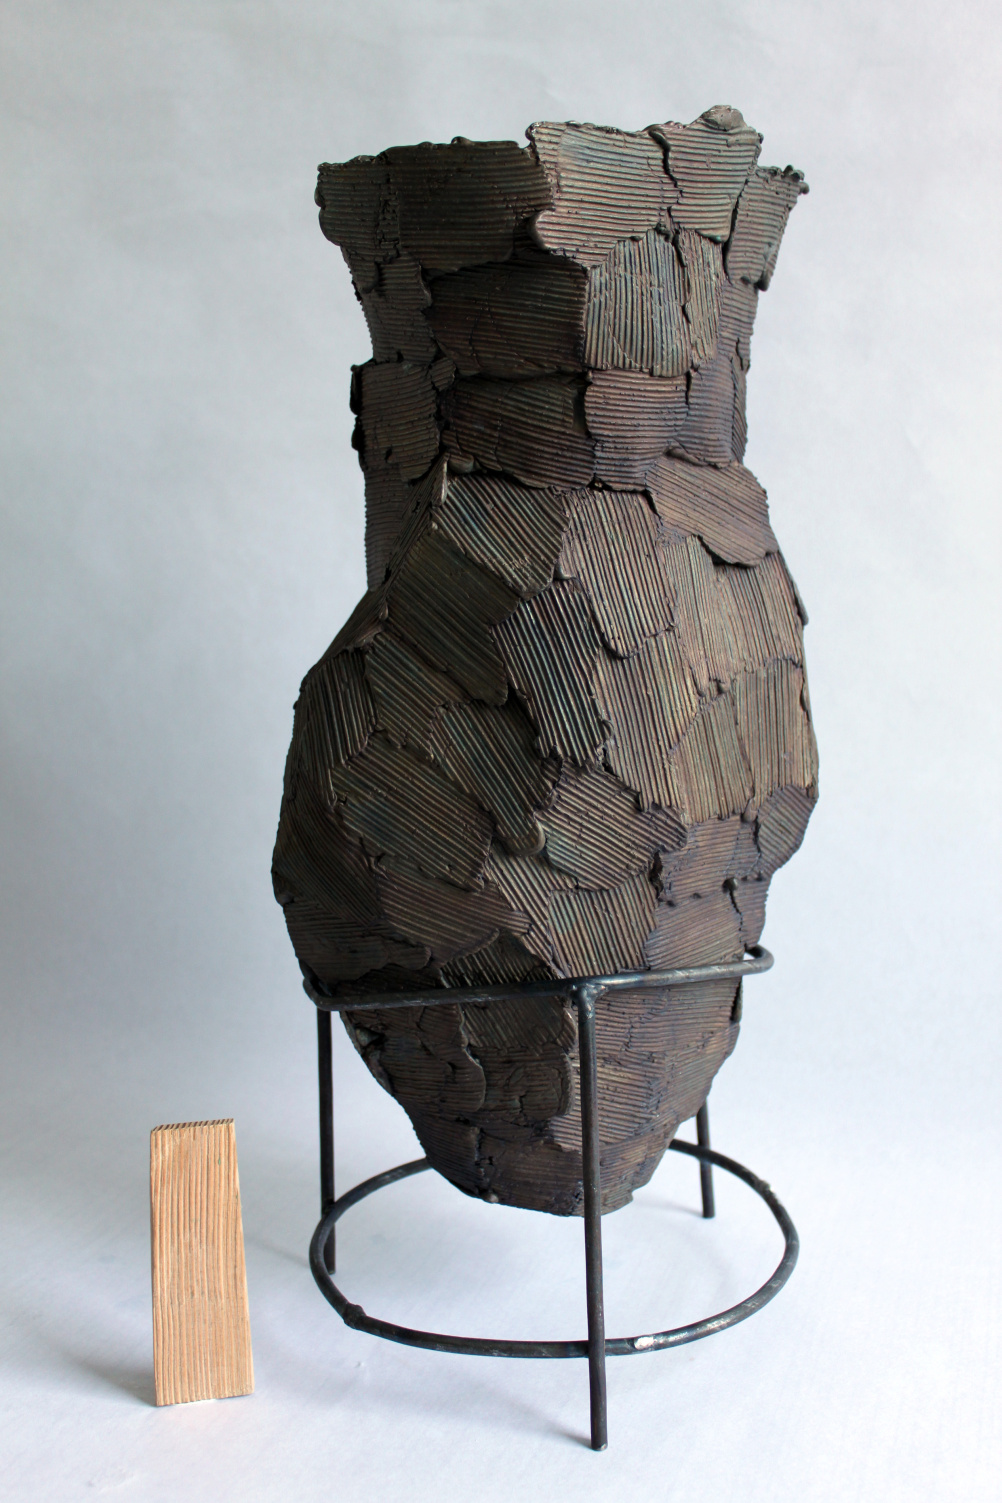 Wooden Vase B by Peter Marigold 2011